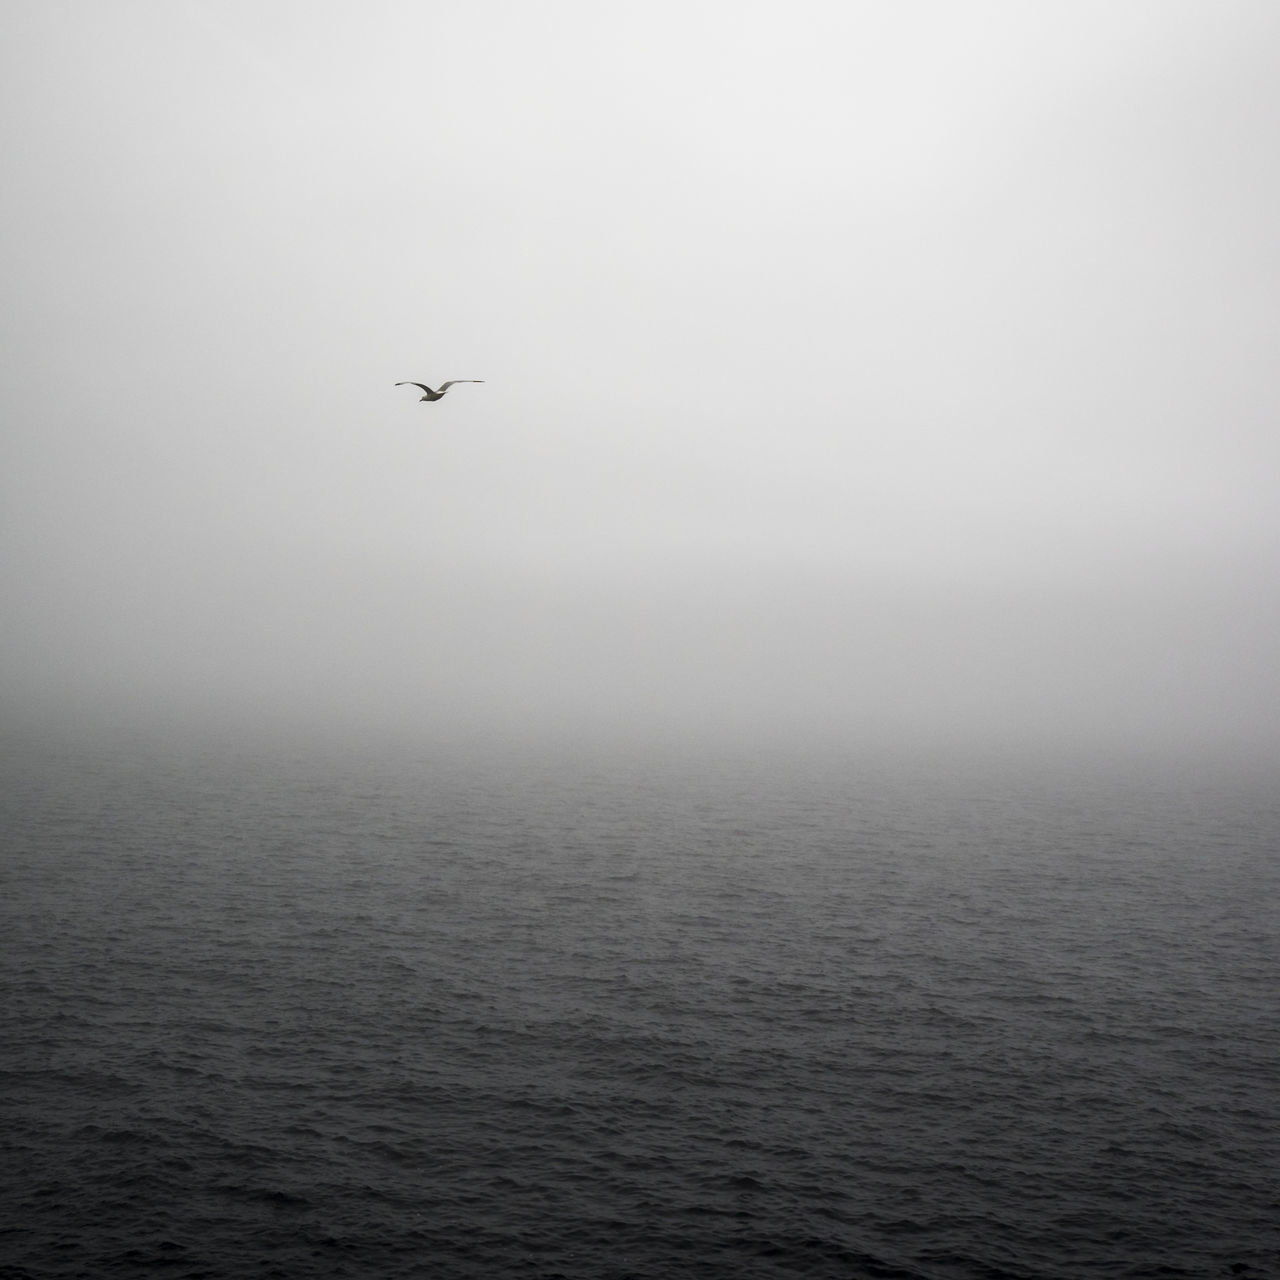 Flying Outdoors Nature Day No People Sky Water Bird Beauty In Nature Animal Themes Clean Lake Ocean Sea Sea And Sky Fog Mist Landscape Seascape The Great Outdoors - 2017 EyeEm Awards